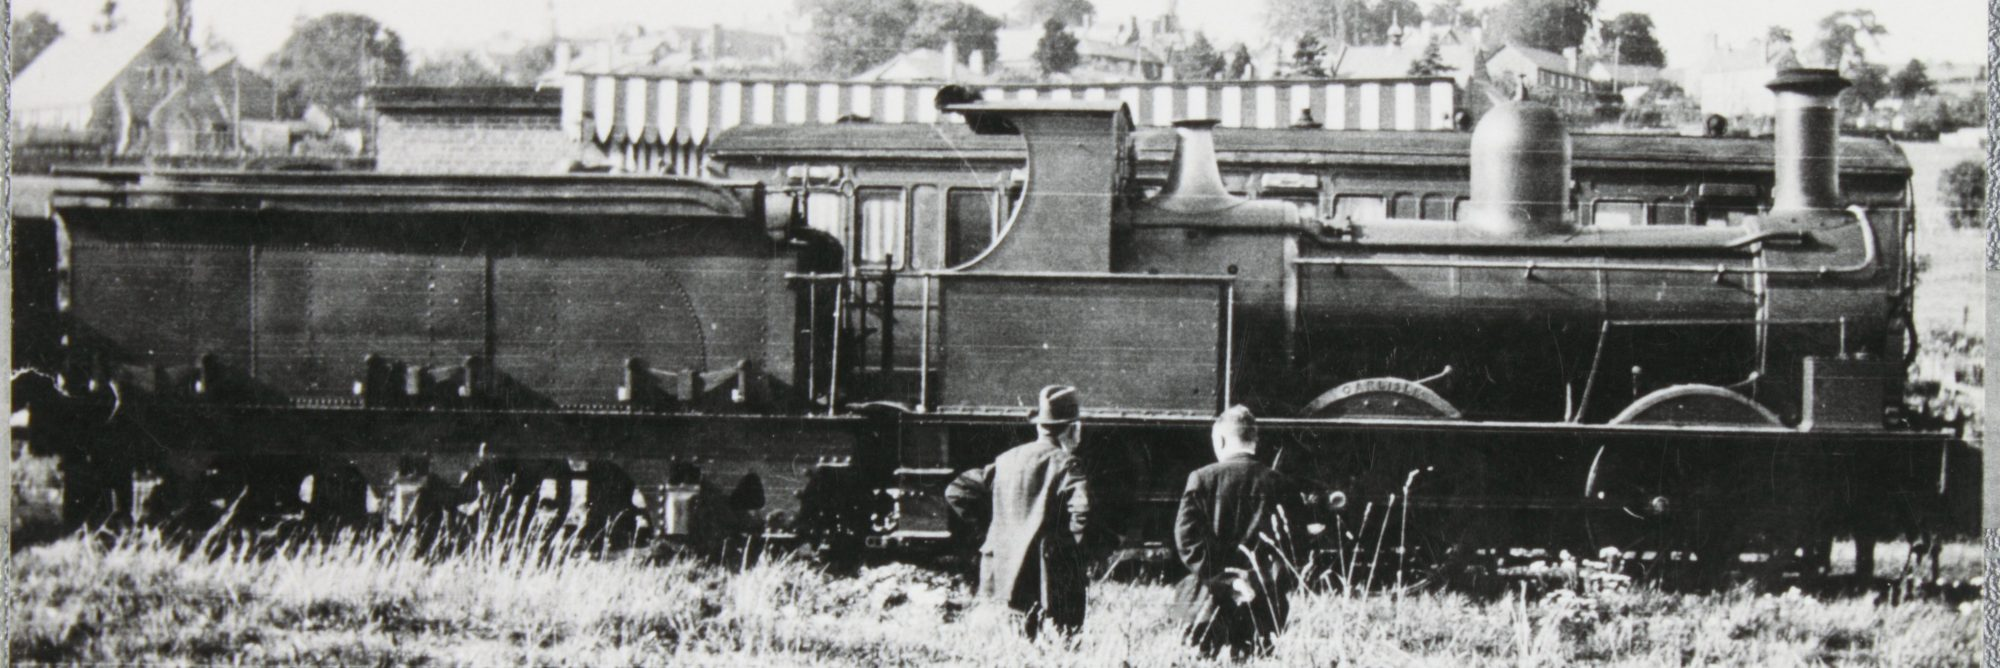 Bishop's Castle Railway Society